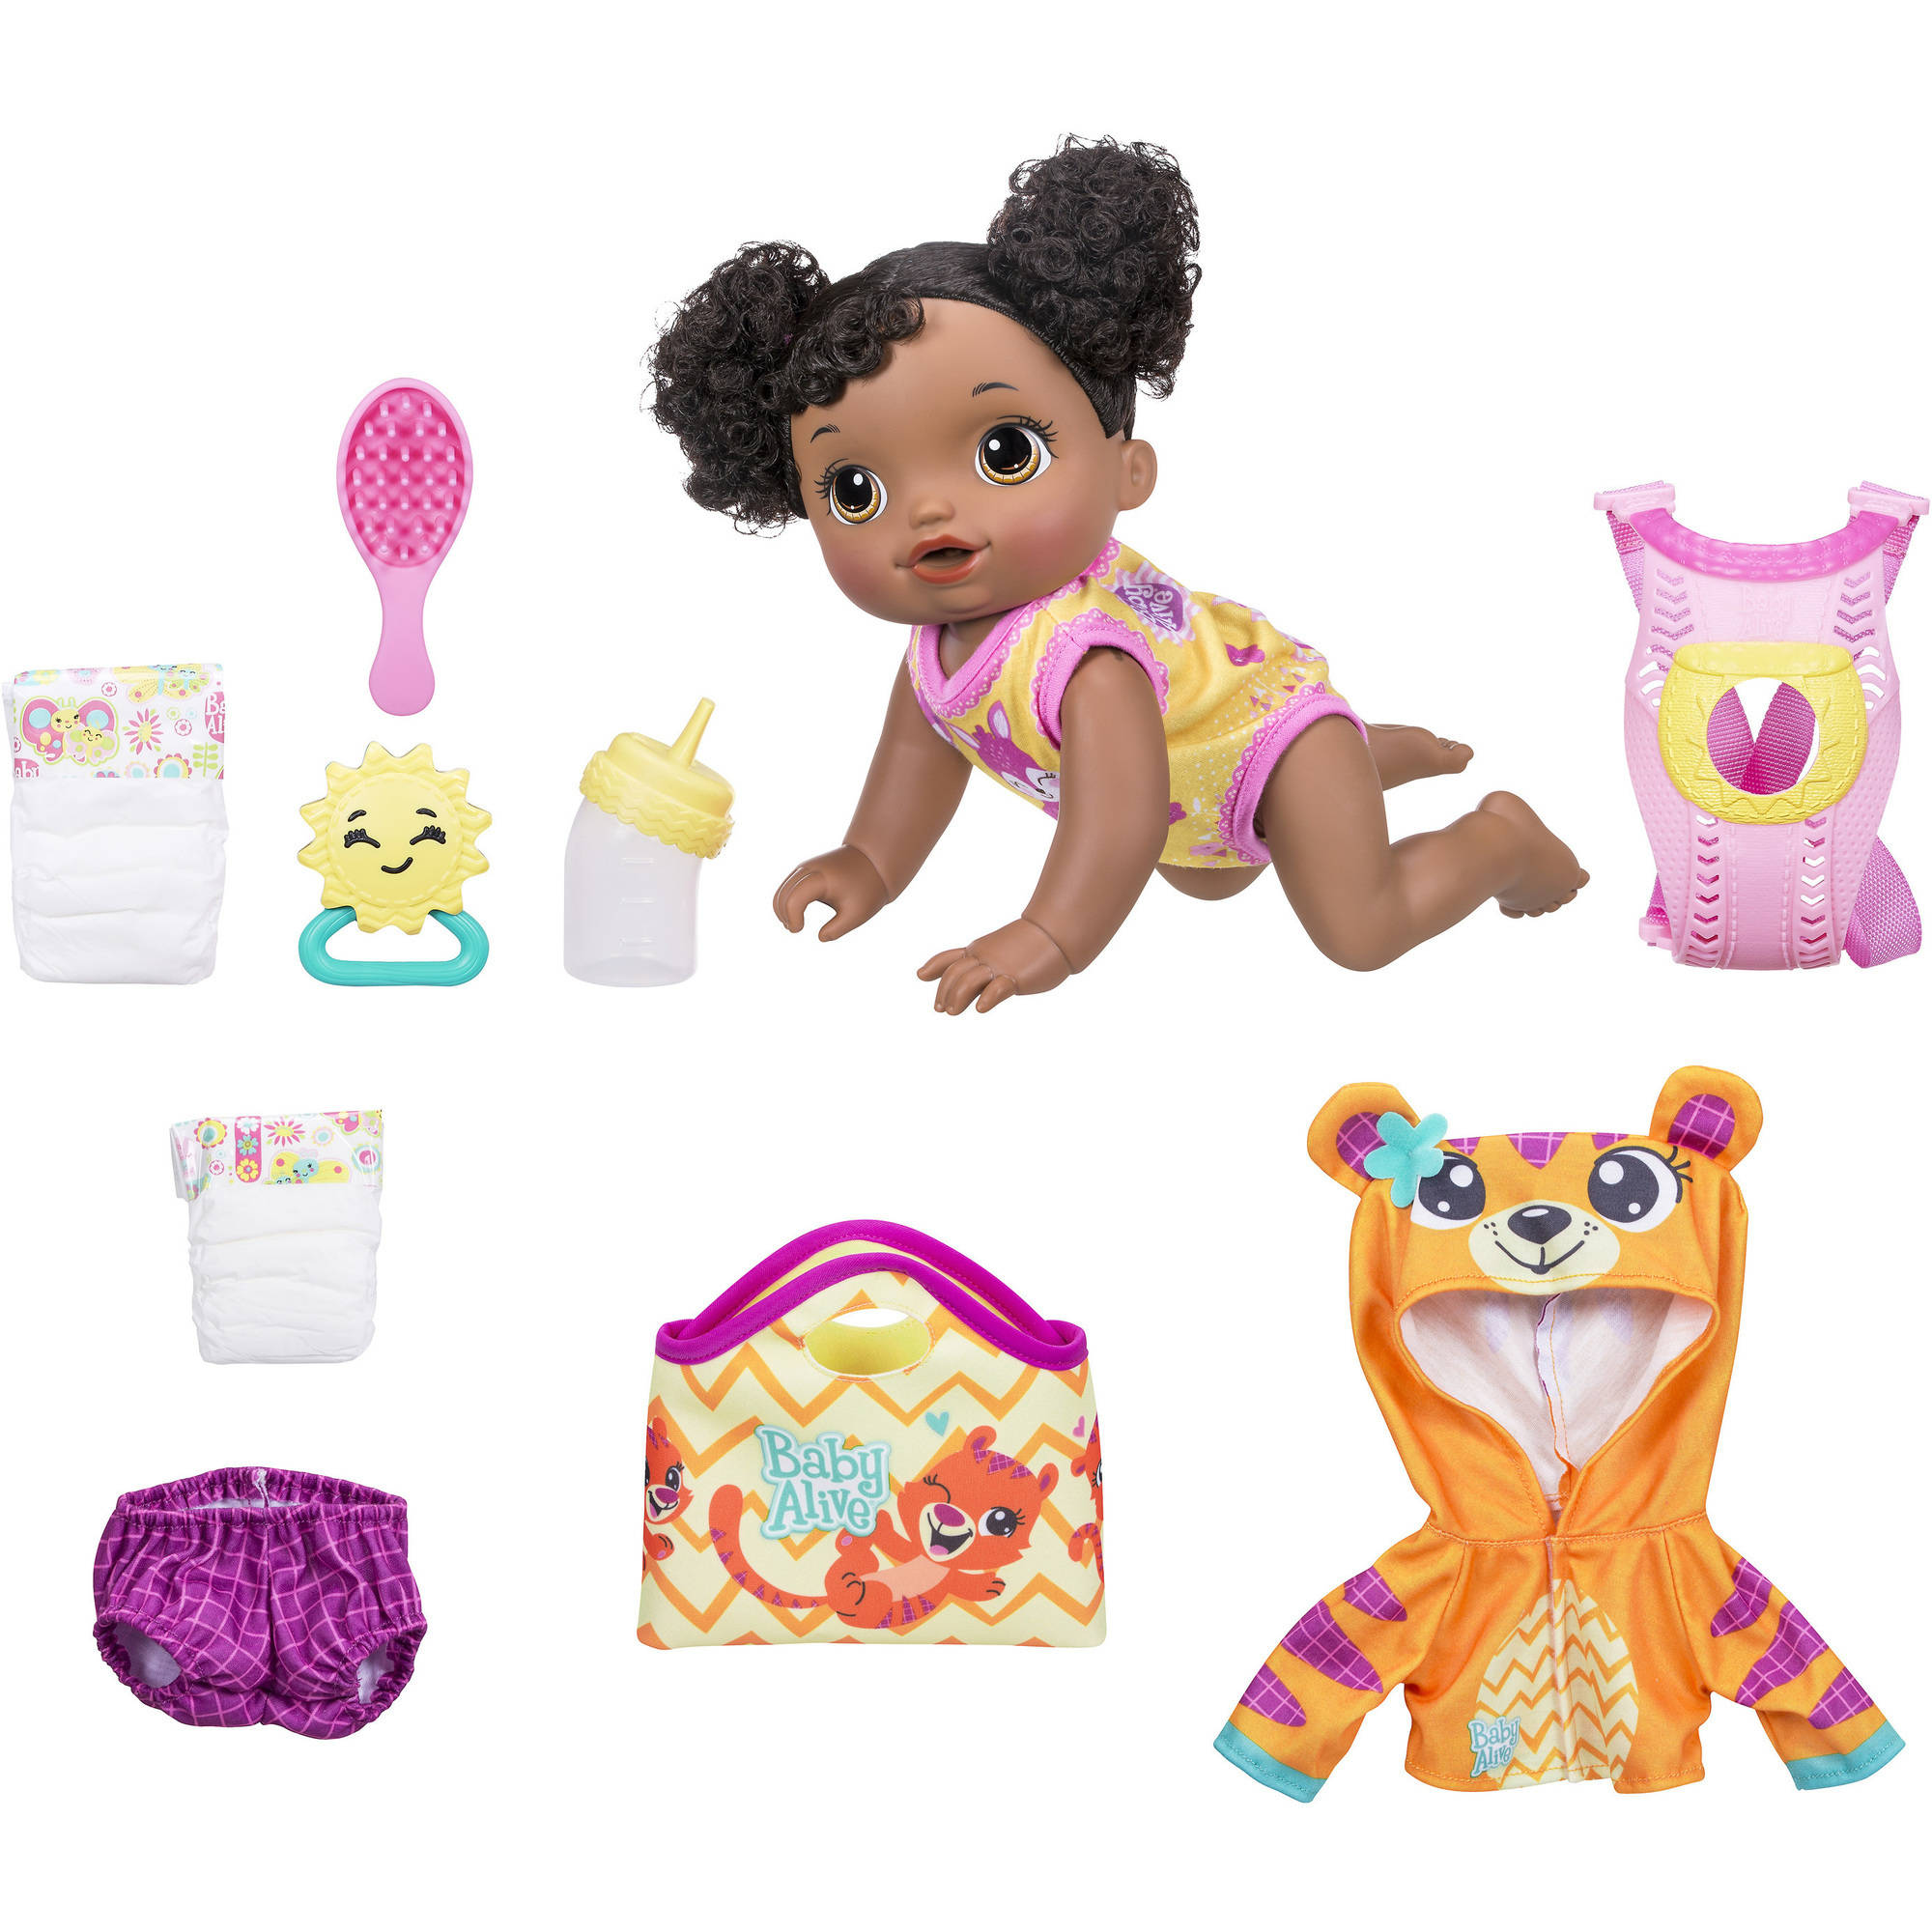 Toys for Girls Walmart